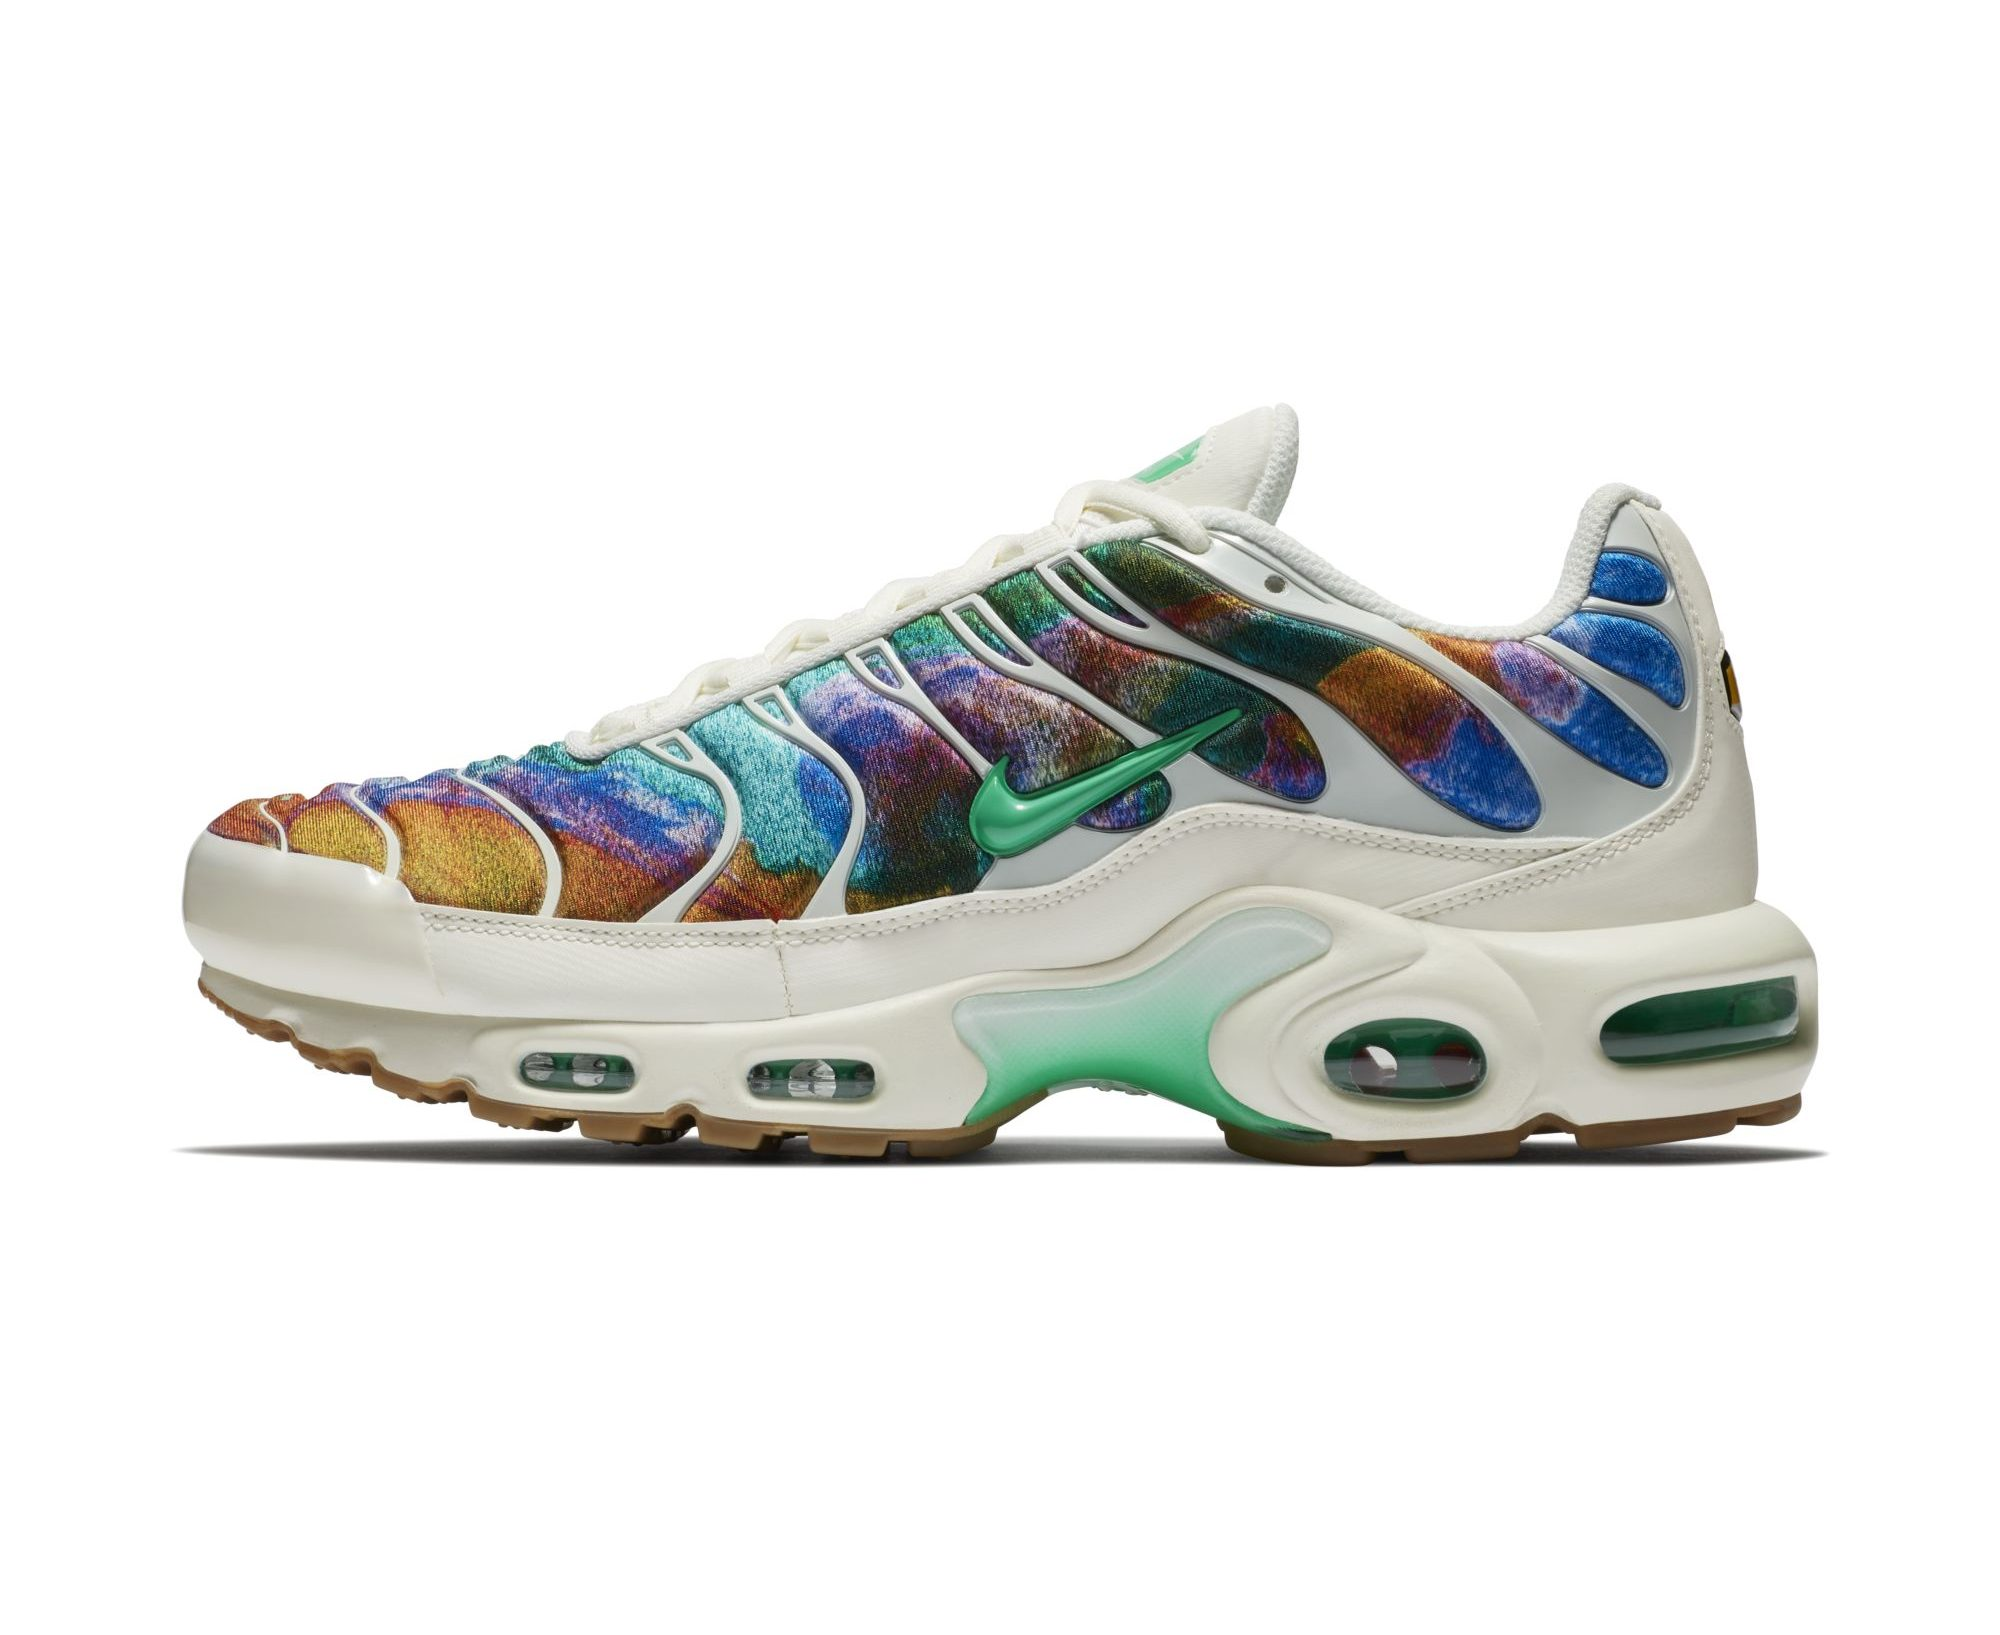 67ee9c0bd7 air max plus alternate galaxy Archives - WearTesters